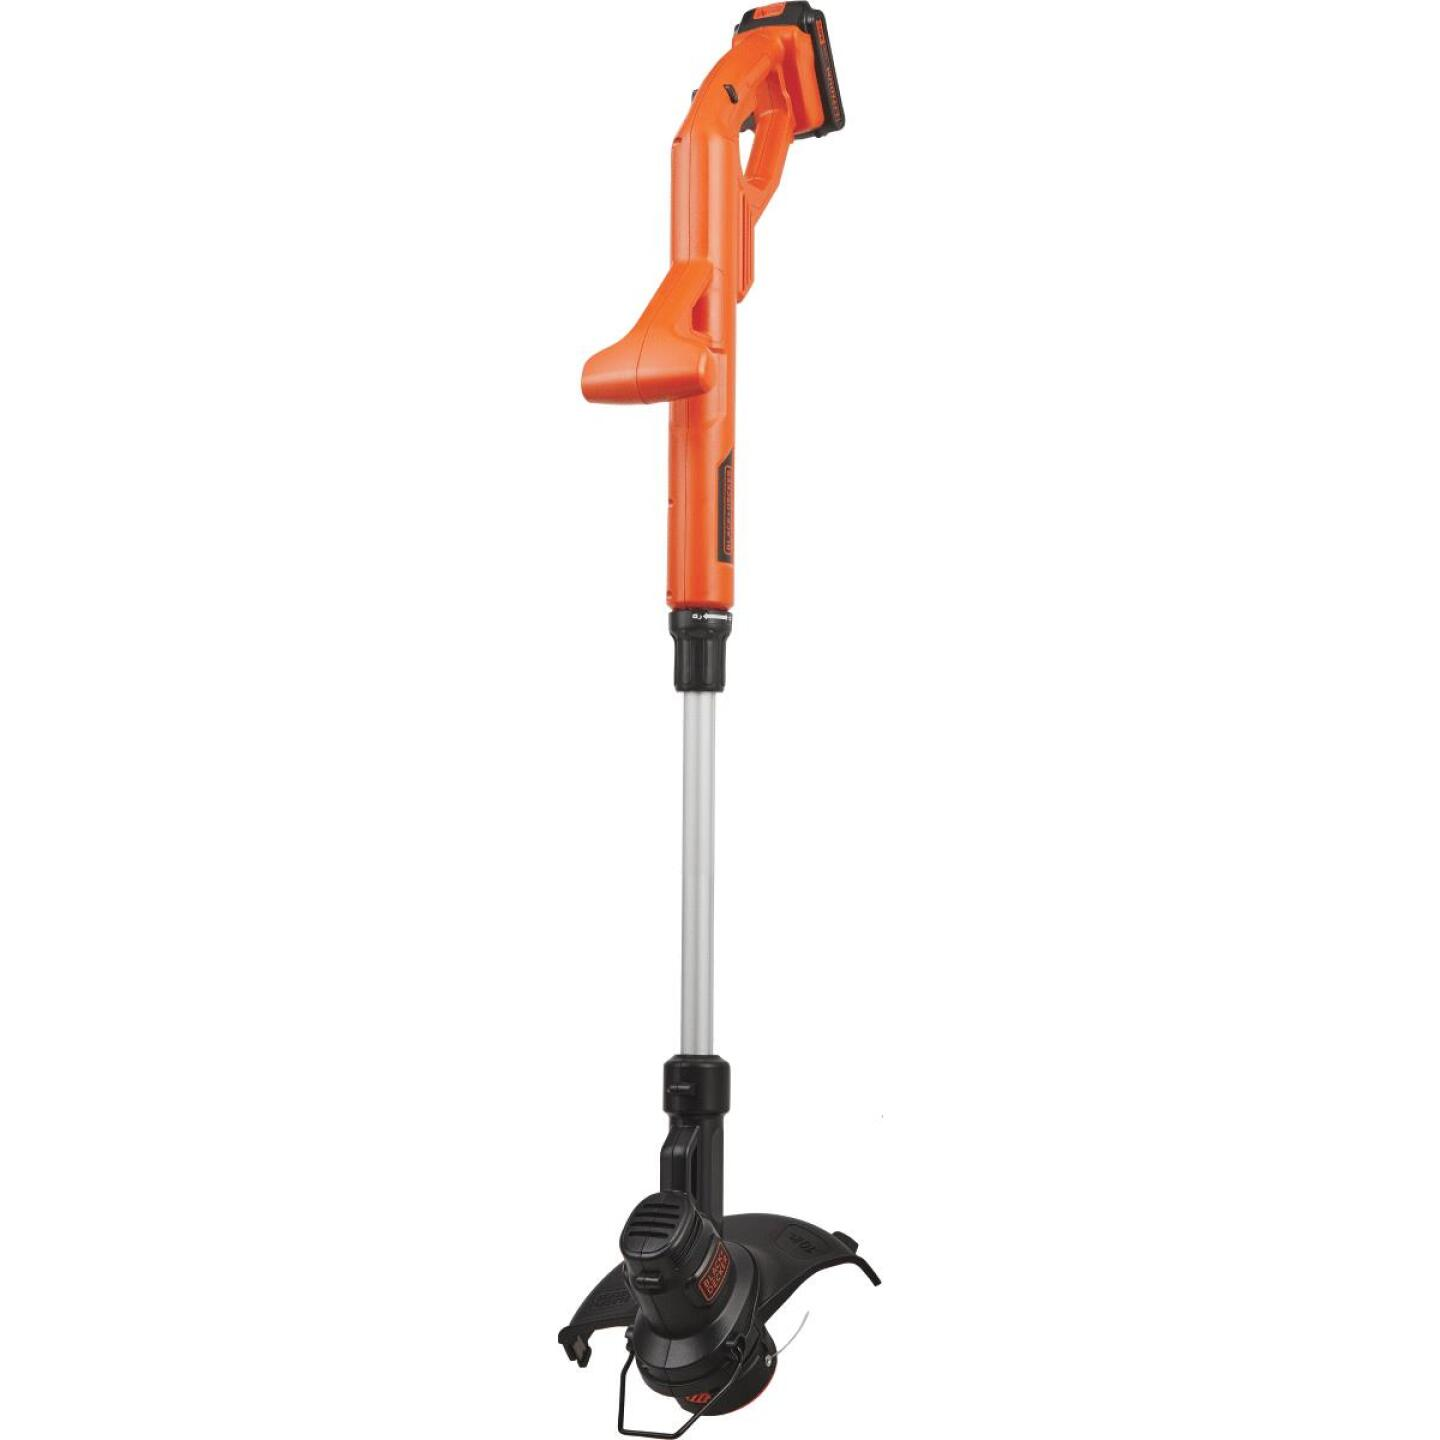 Black & Decker 20V MAX 10 In. Lithium Ion Straight Cordless String Trimmer/Edger Image 1